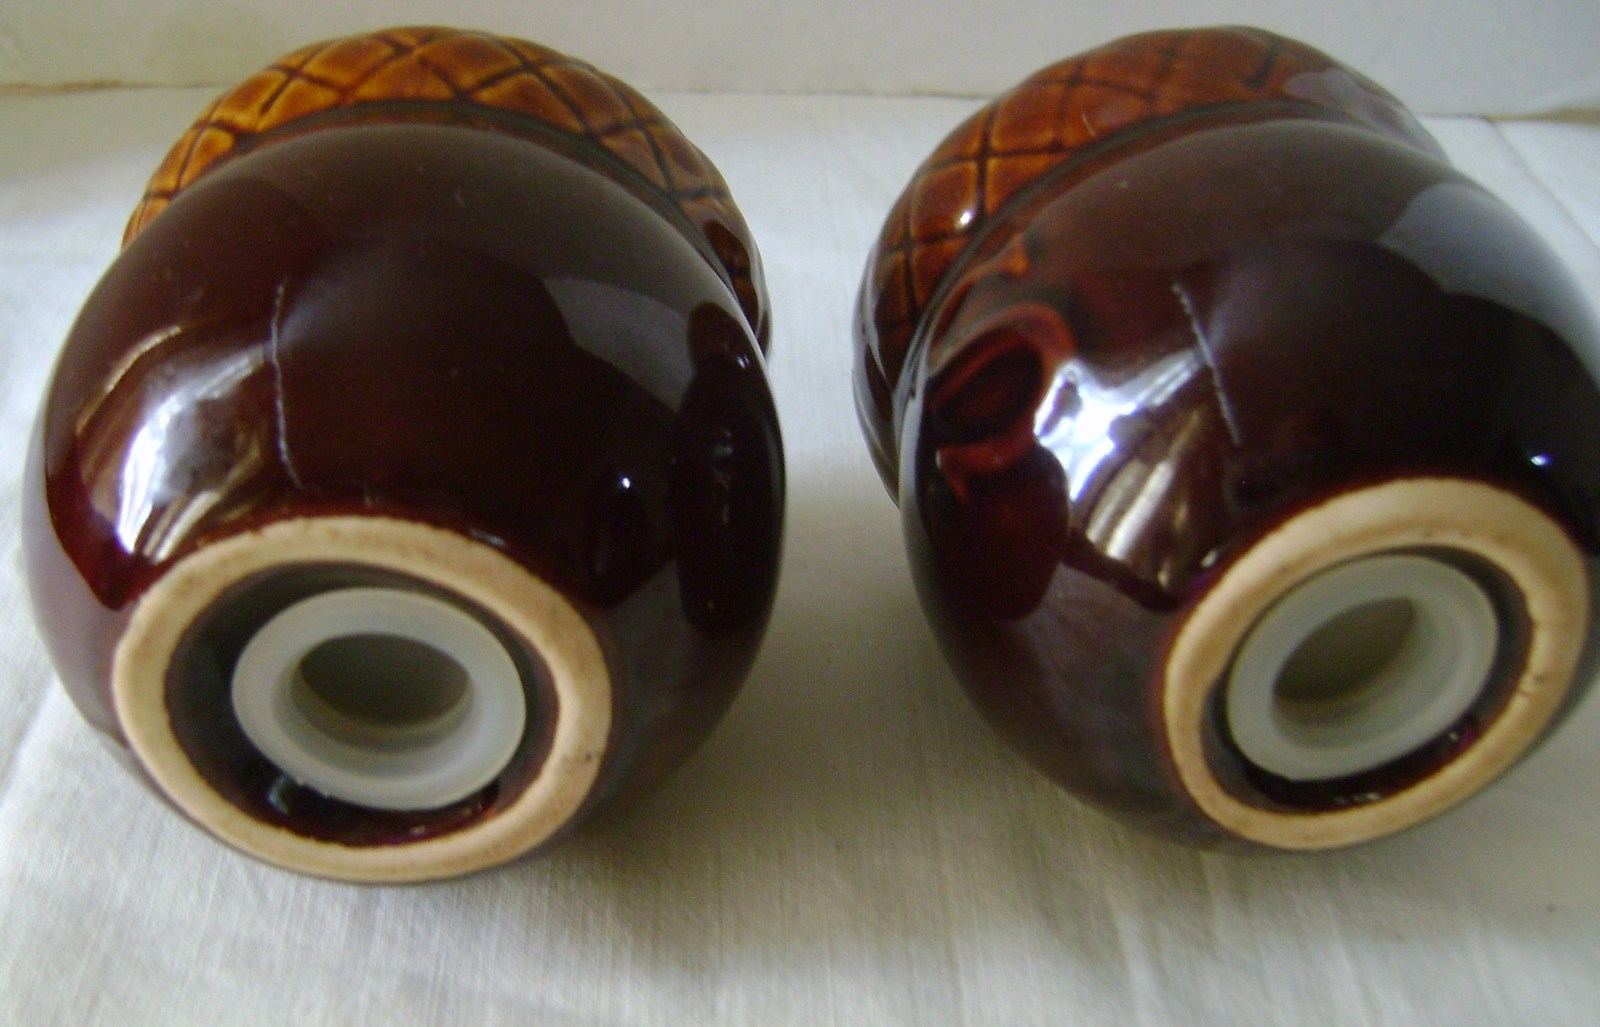 CERAMIC ACORN SALT & PEPPER SHAKERS